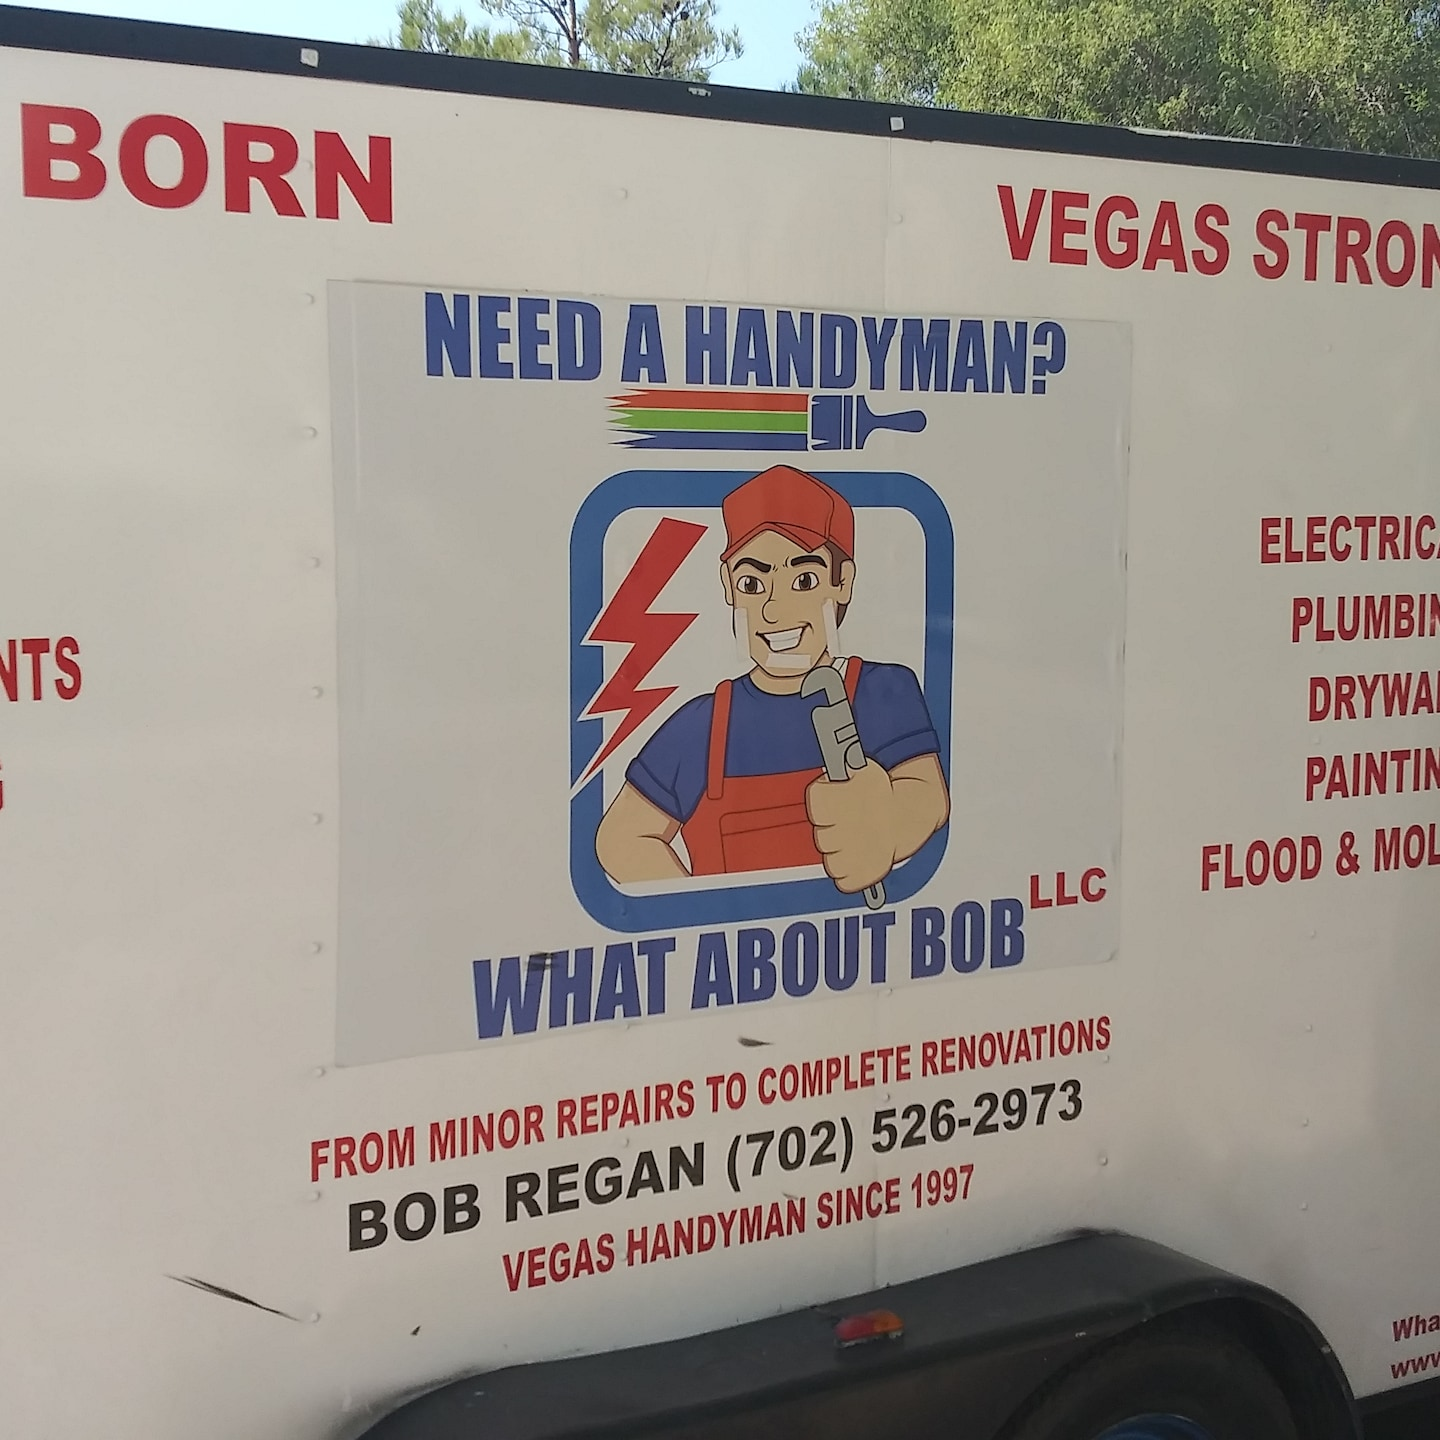 Need a Handyman? What About Bob